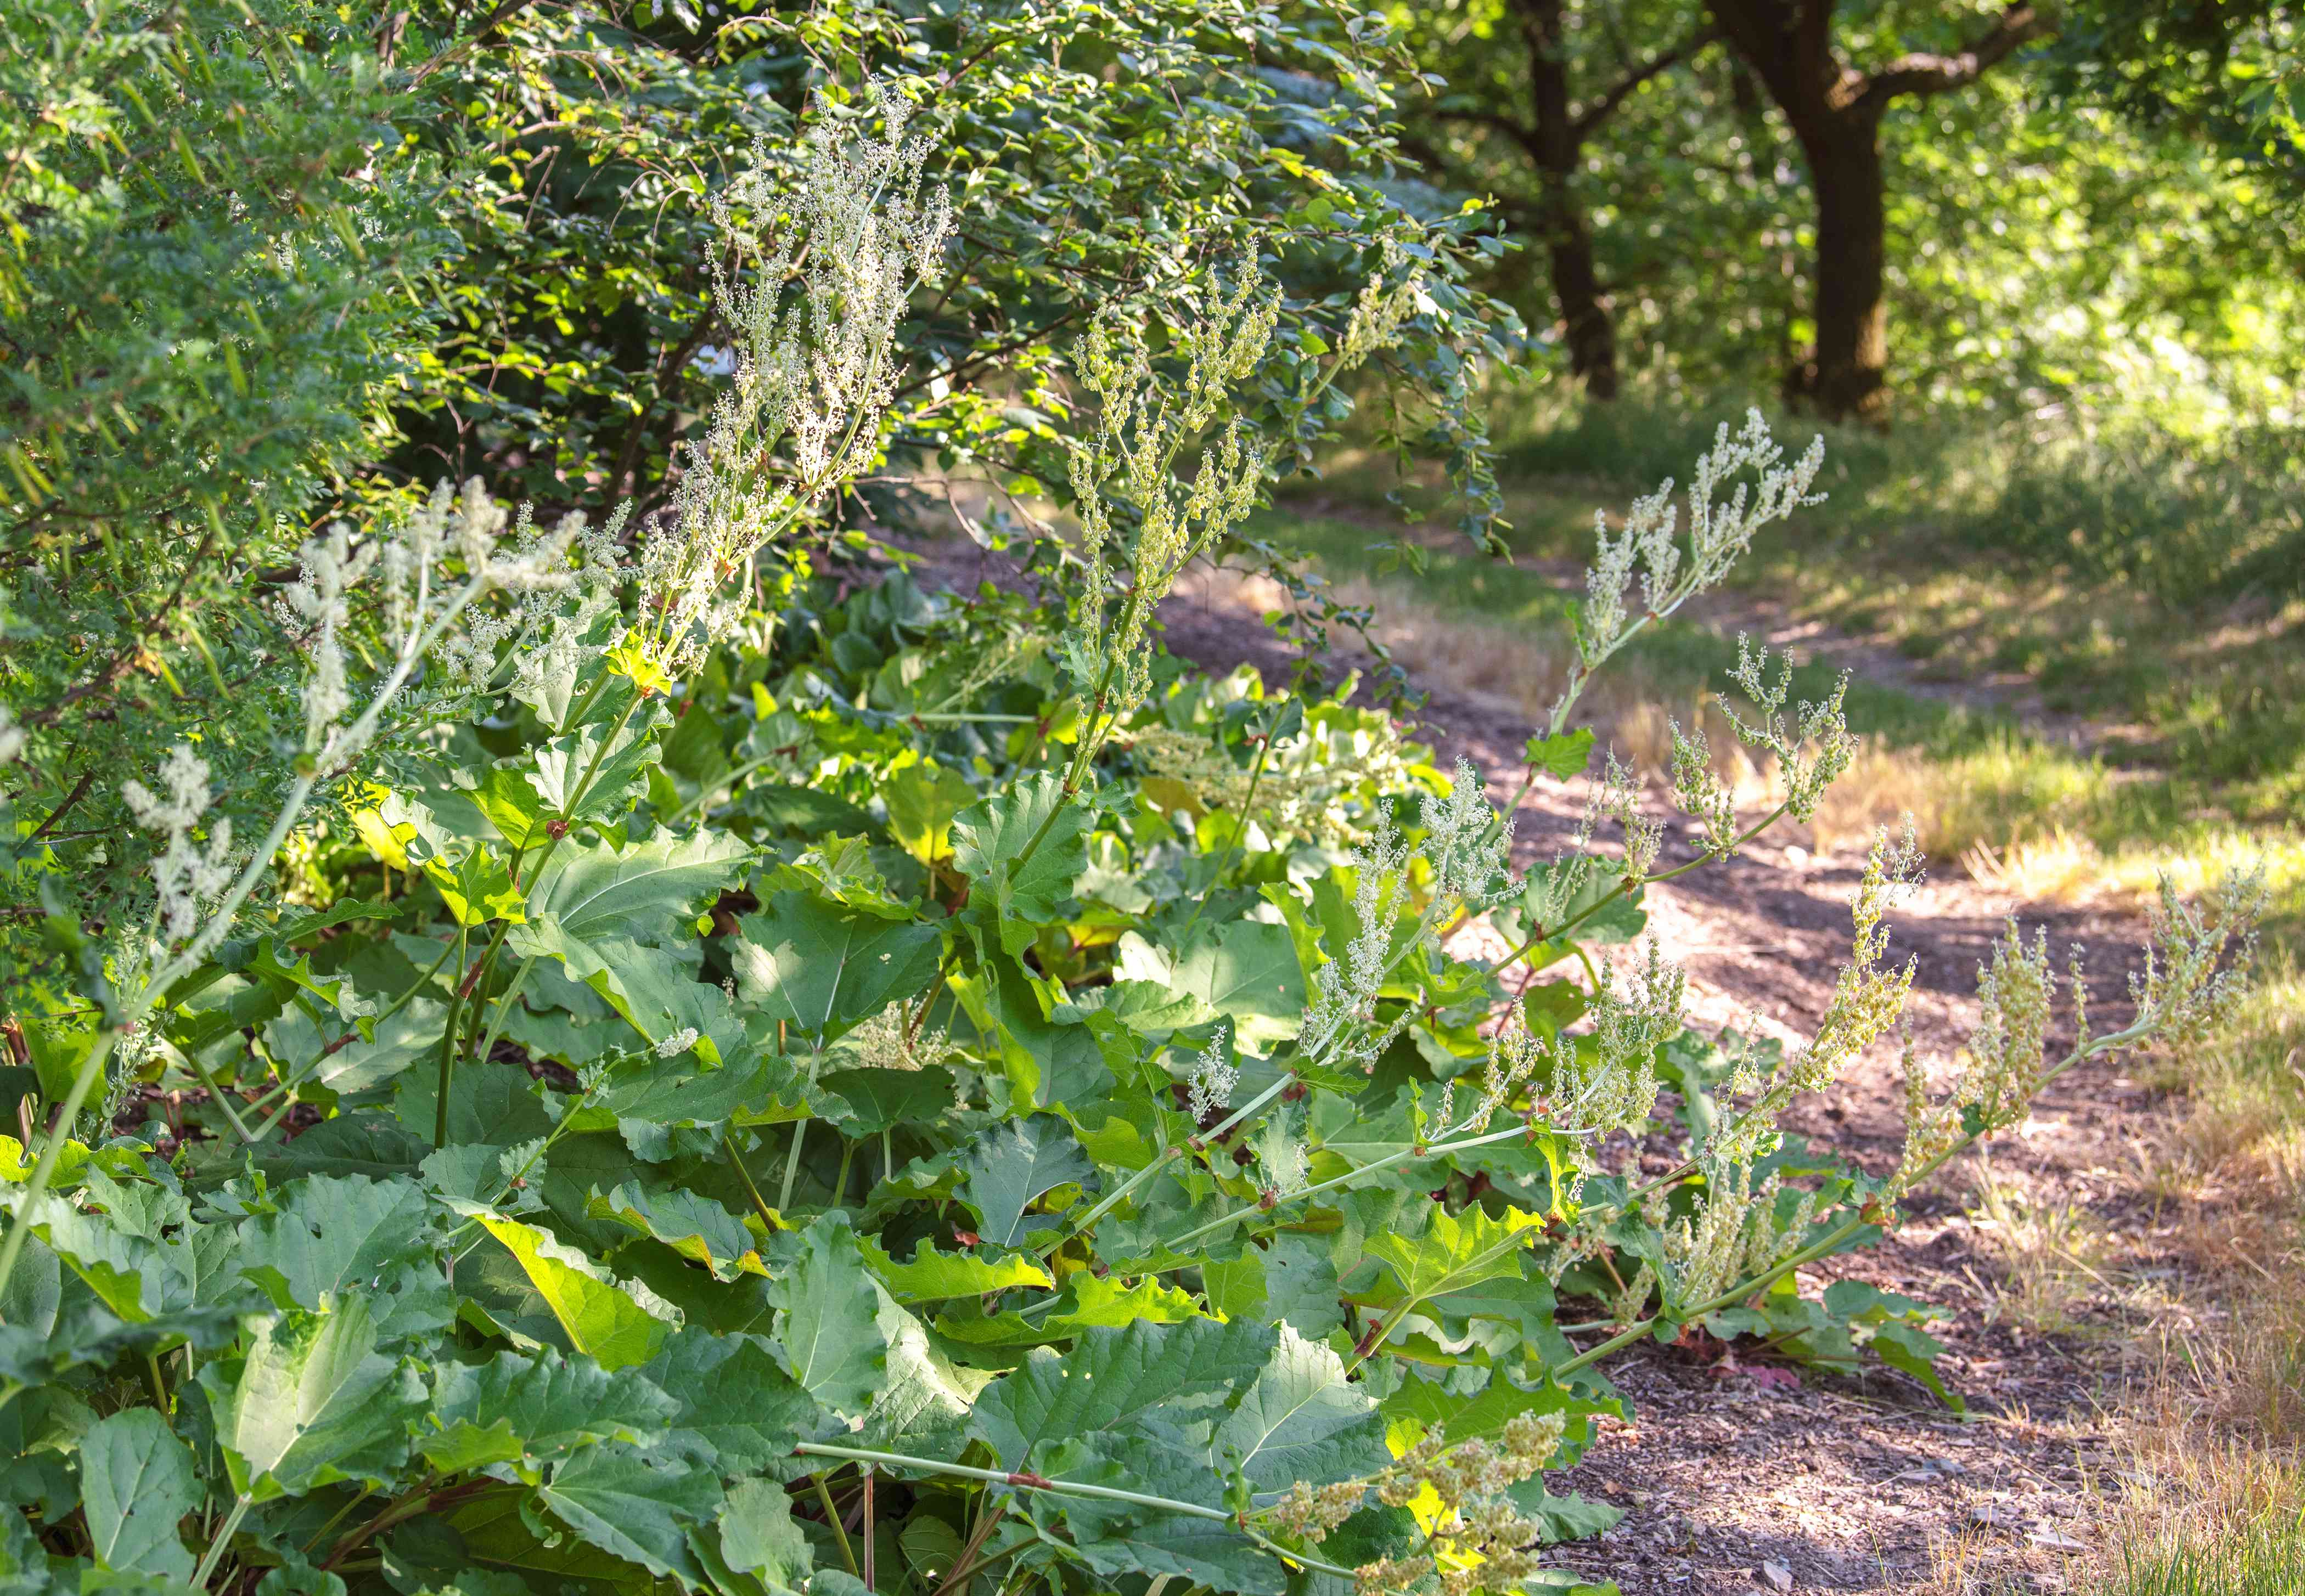 Rhubarb plant with large textured leaves on side of dirt pathway